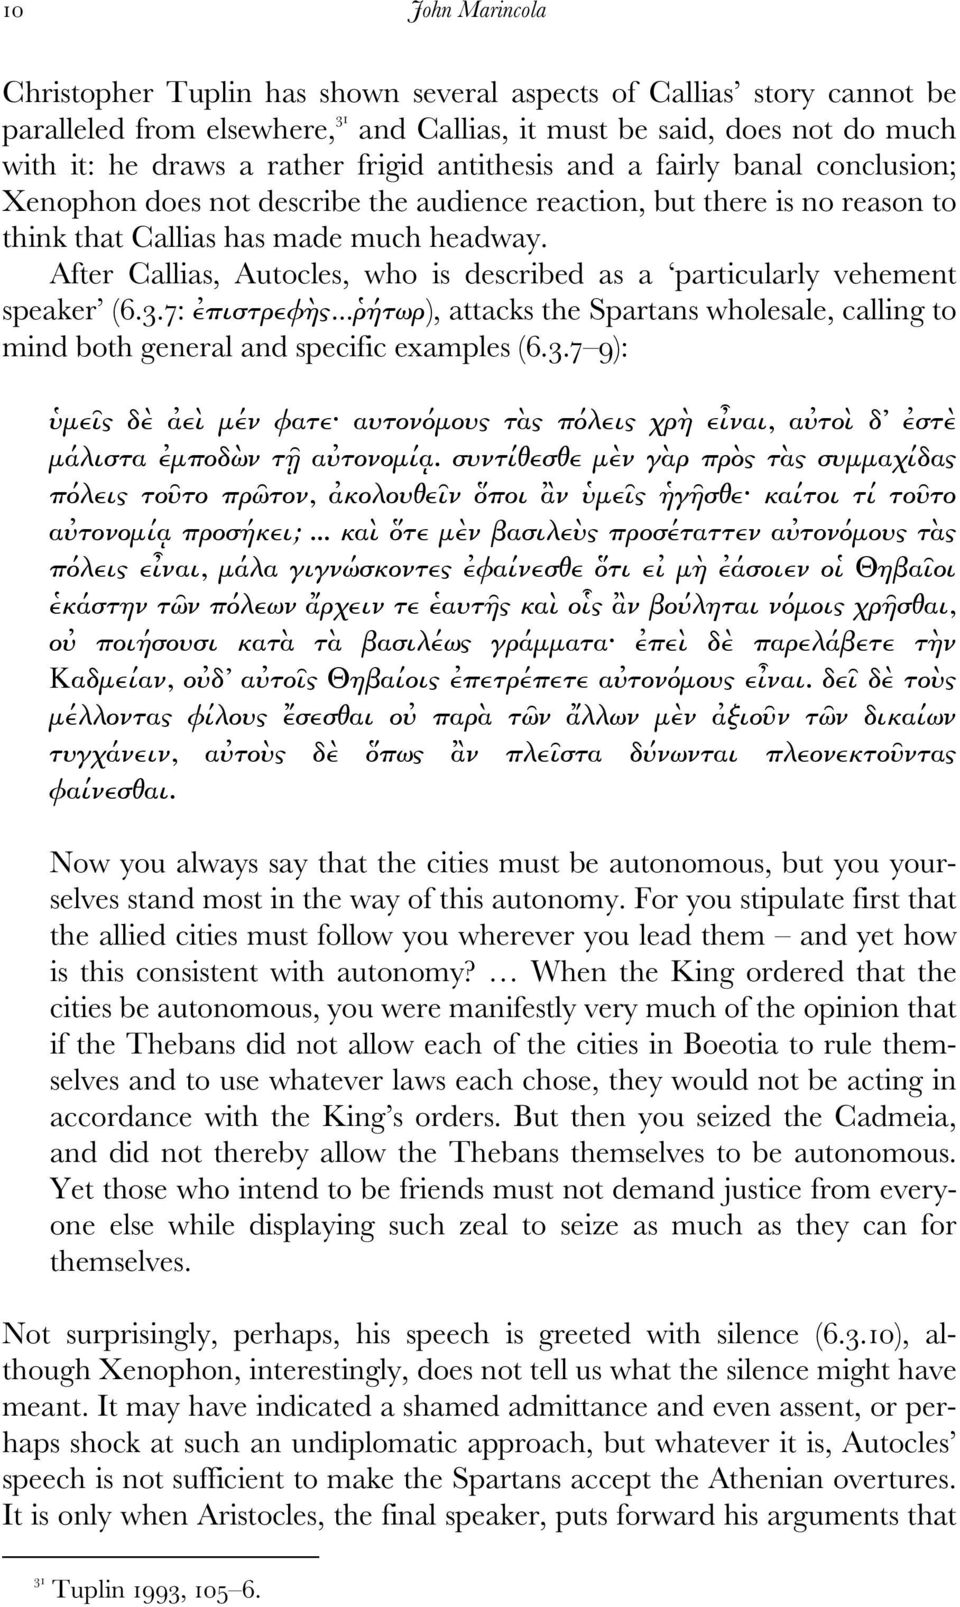 After Callias, Autocles, who is described as a particularly vehement speaker (6.3.7: ἐπιστρεφὴς...ῥήτωρ), attacks the Spartans wholesale, calling to mind both general and specific examples (6.3.7 9): ὑµεῖς δὲ ἀεὶ µέν φατε αυτονόµους τὰς πόλεις χρὴ εἶναι, αὐτοὶ δ ἐστὲ µάλιστα ἐµποδὼν τῇ αὐτονοµίᾳ.